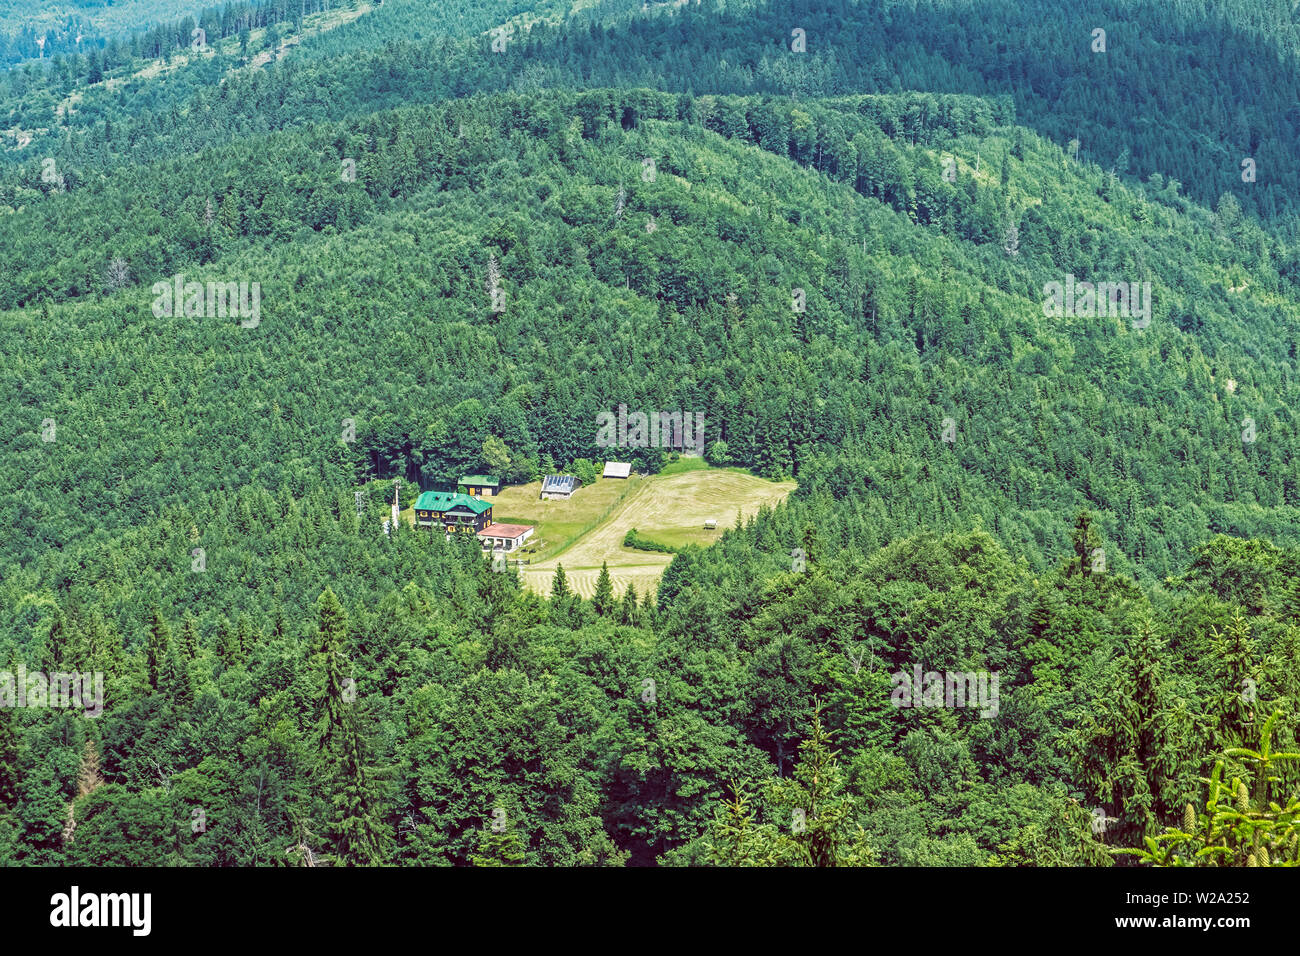 Coniferous forest and mountain hut for tourists from Hrb hill, Vepor, Slovak republic. Seasonal natural scene. Travel destination. - Stock Image